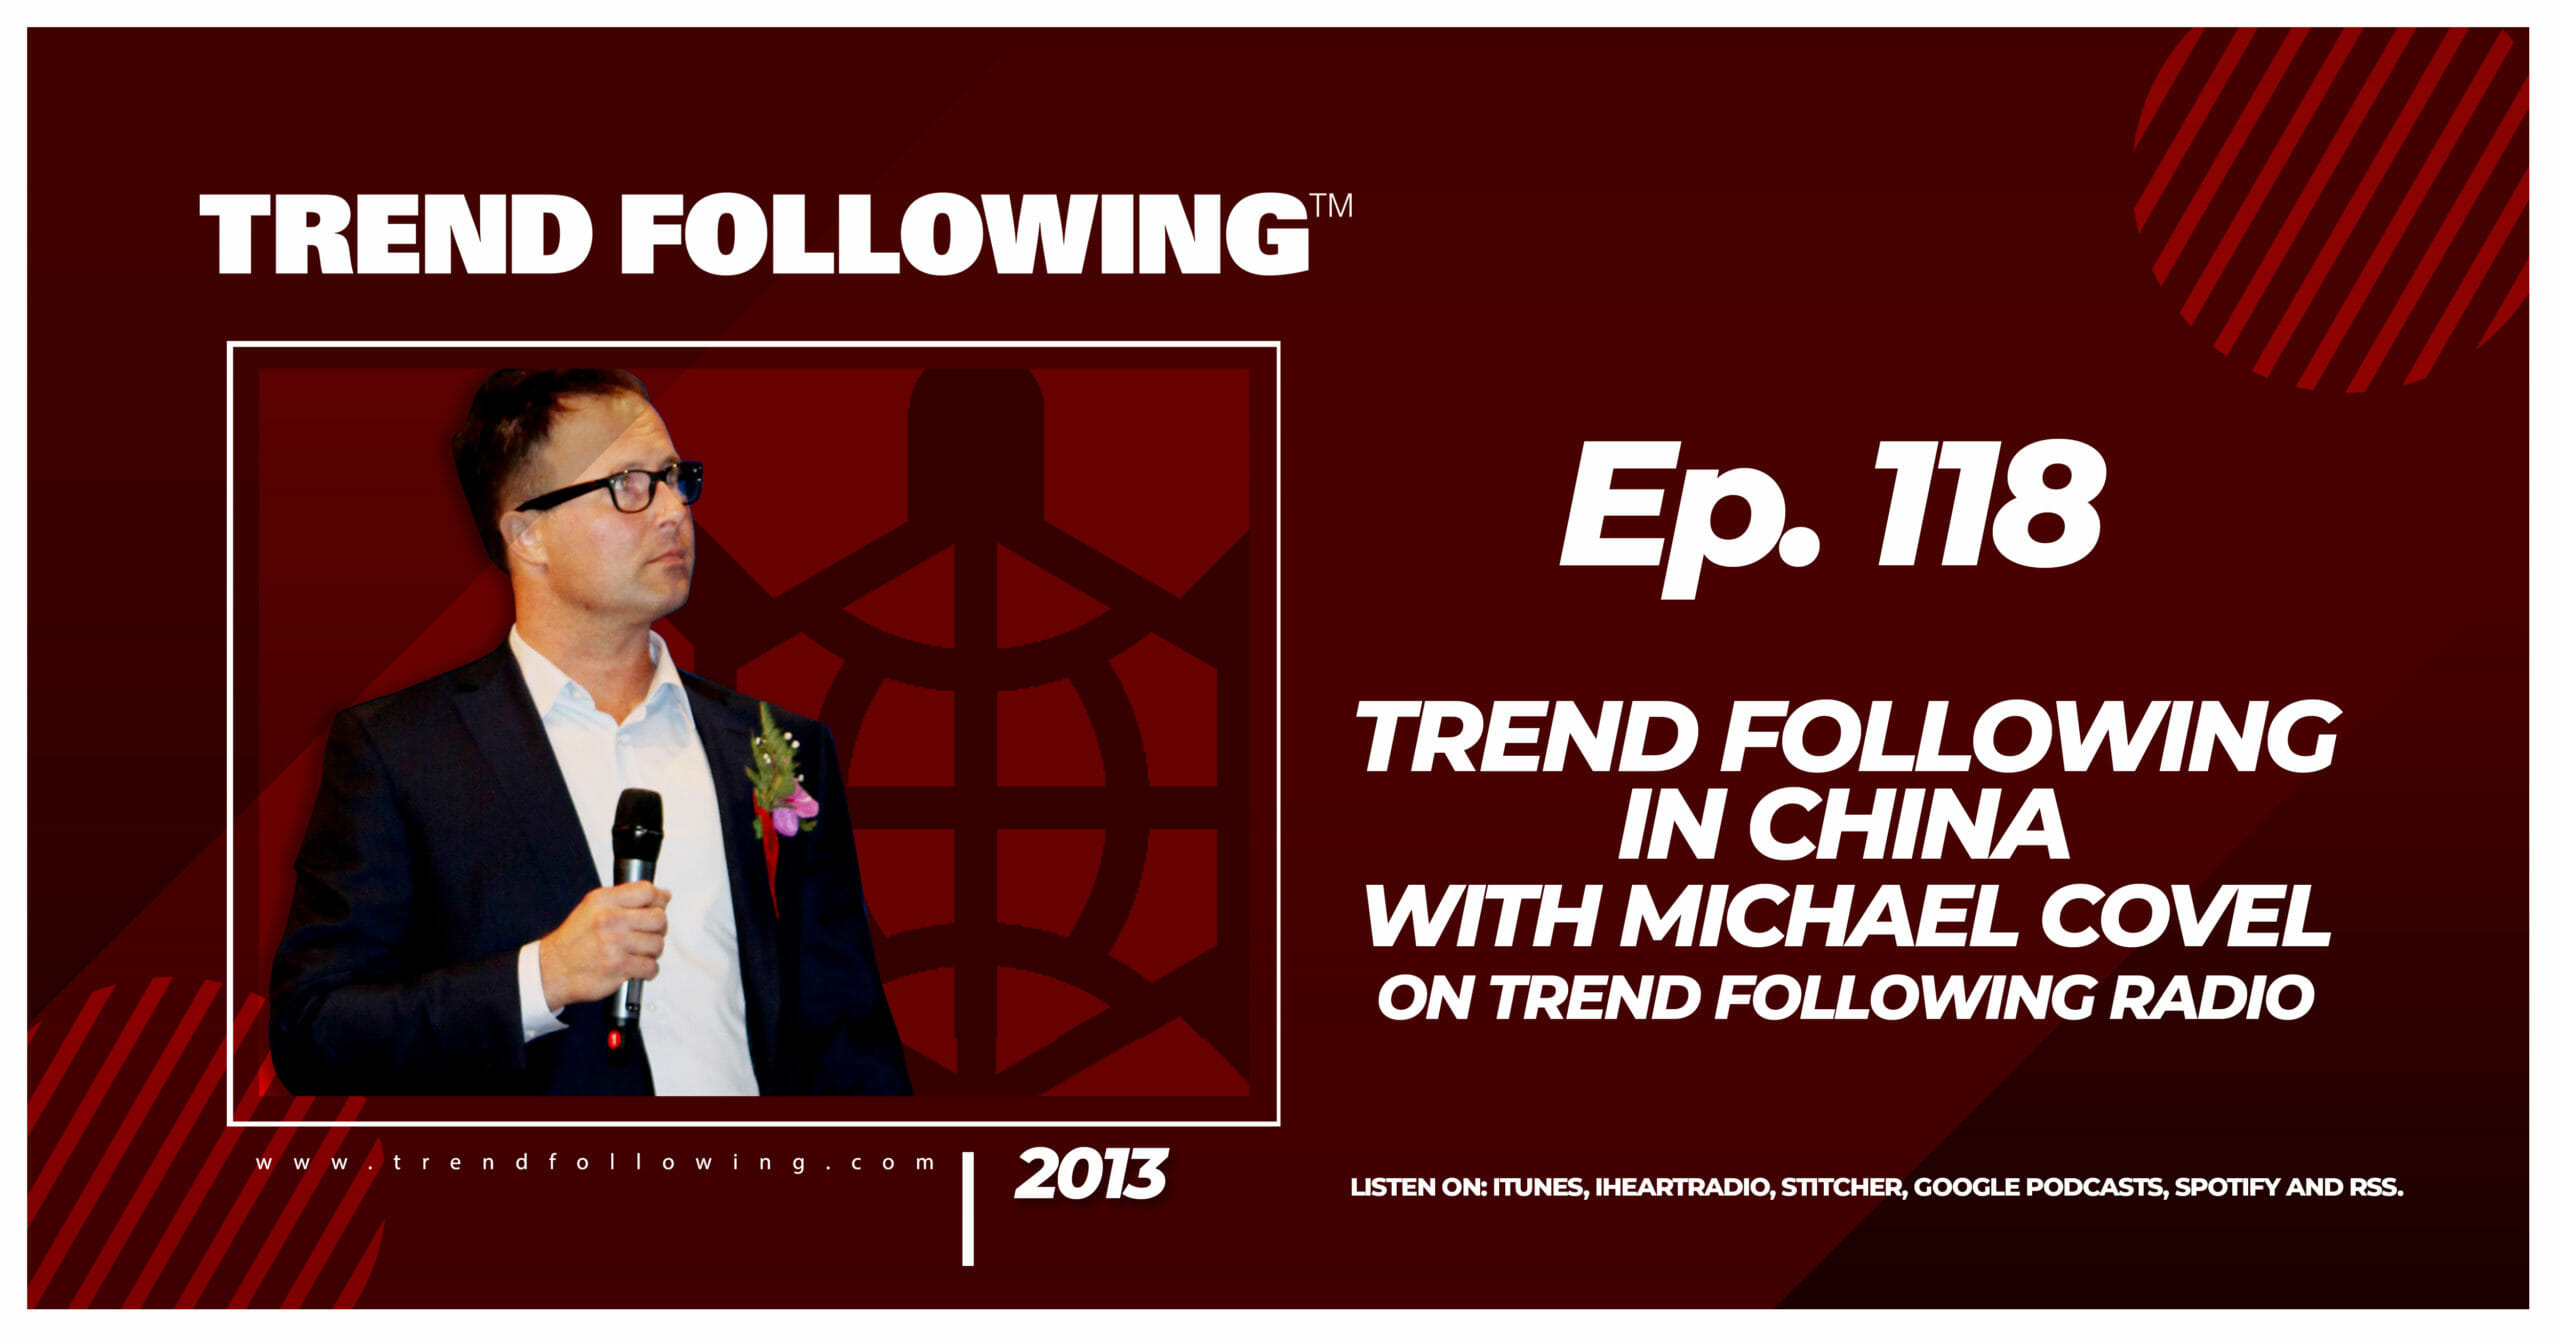 Trend Following in China with Michael Covel on Trend Following Radio